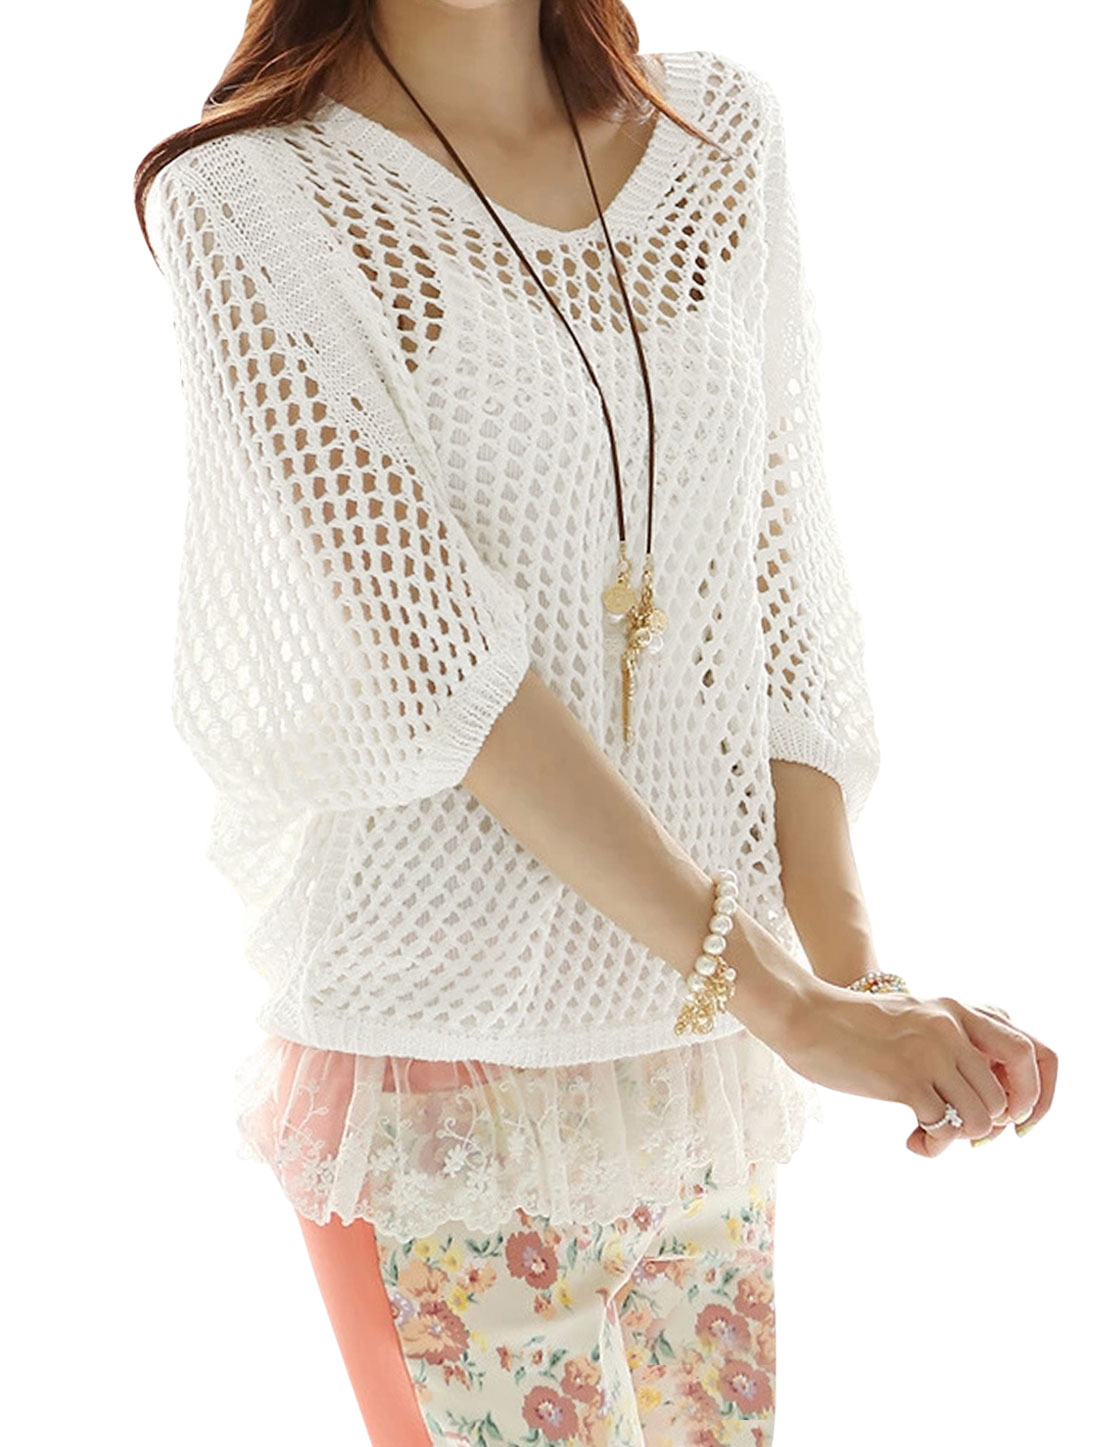 Women Summer 3/4 Batwing Sleeves Hollow Out Rib Knit Cover-Up Top White S